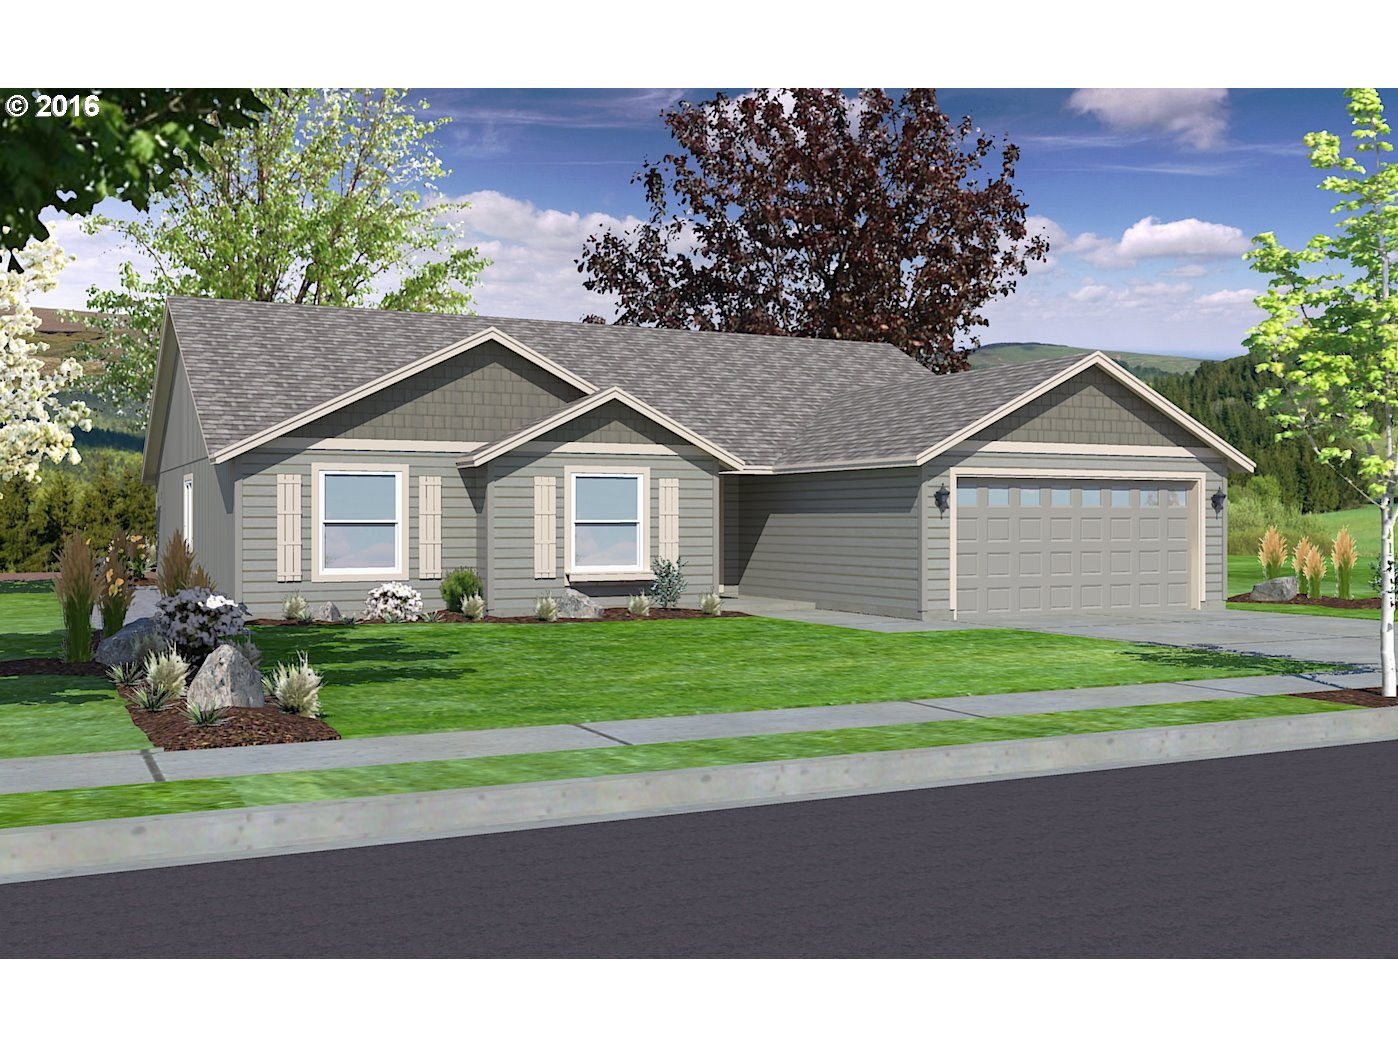 981 S 54th ST, Springfield, OR 97477